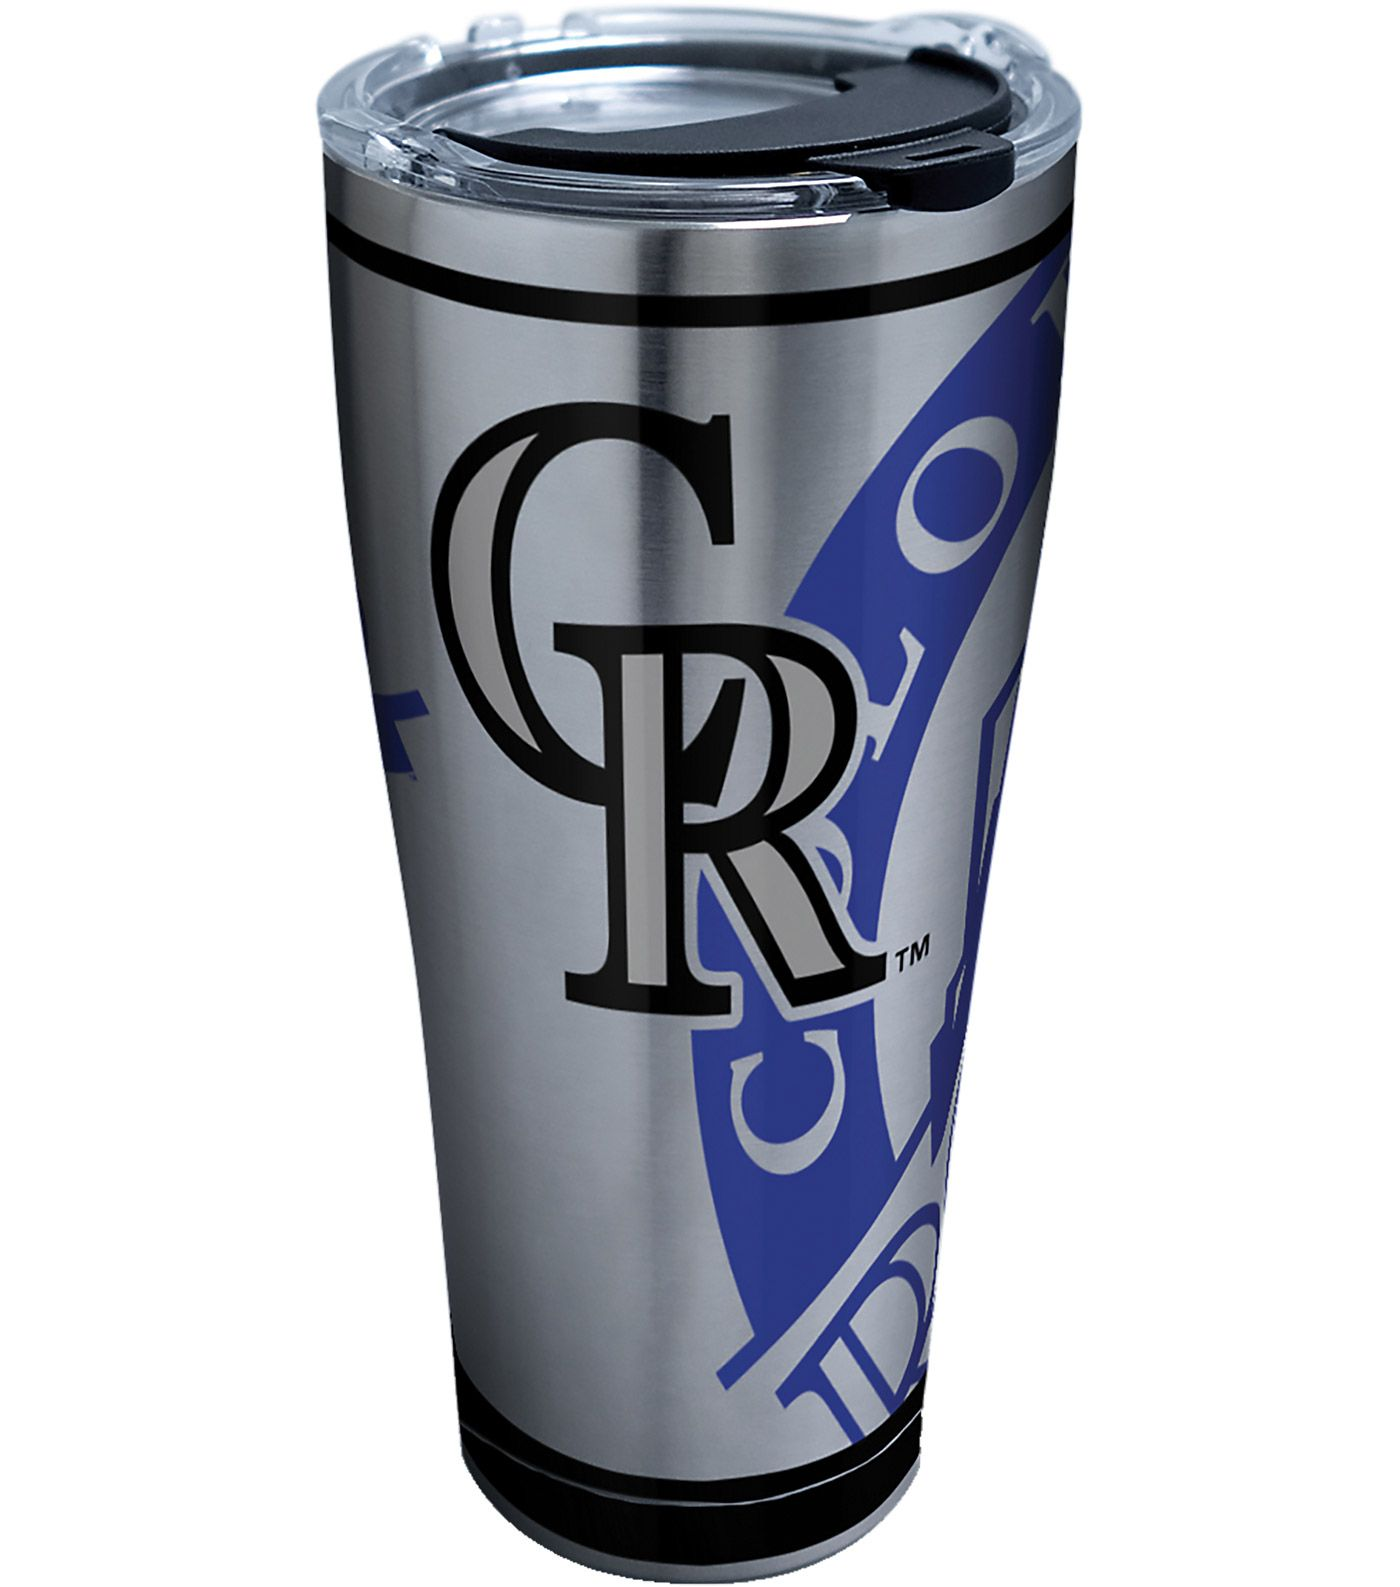 Tervis Colorado Rockies 30oz. Stainless Steel Tumbler